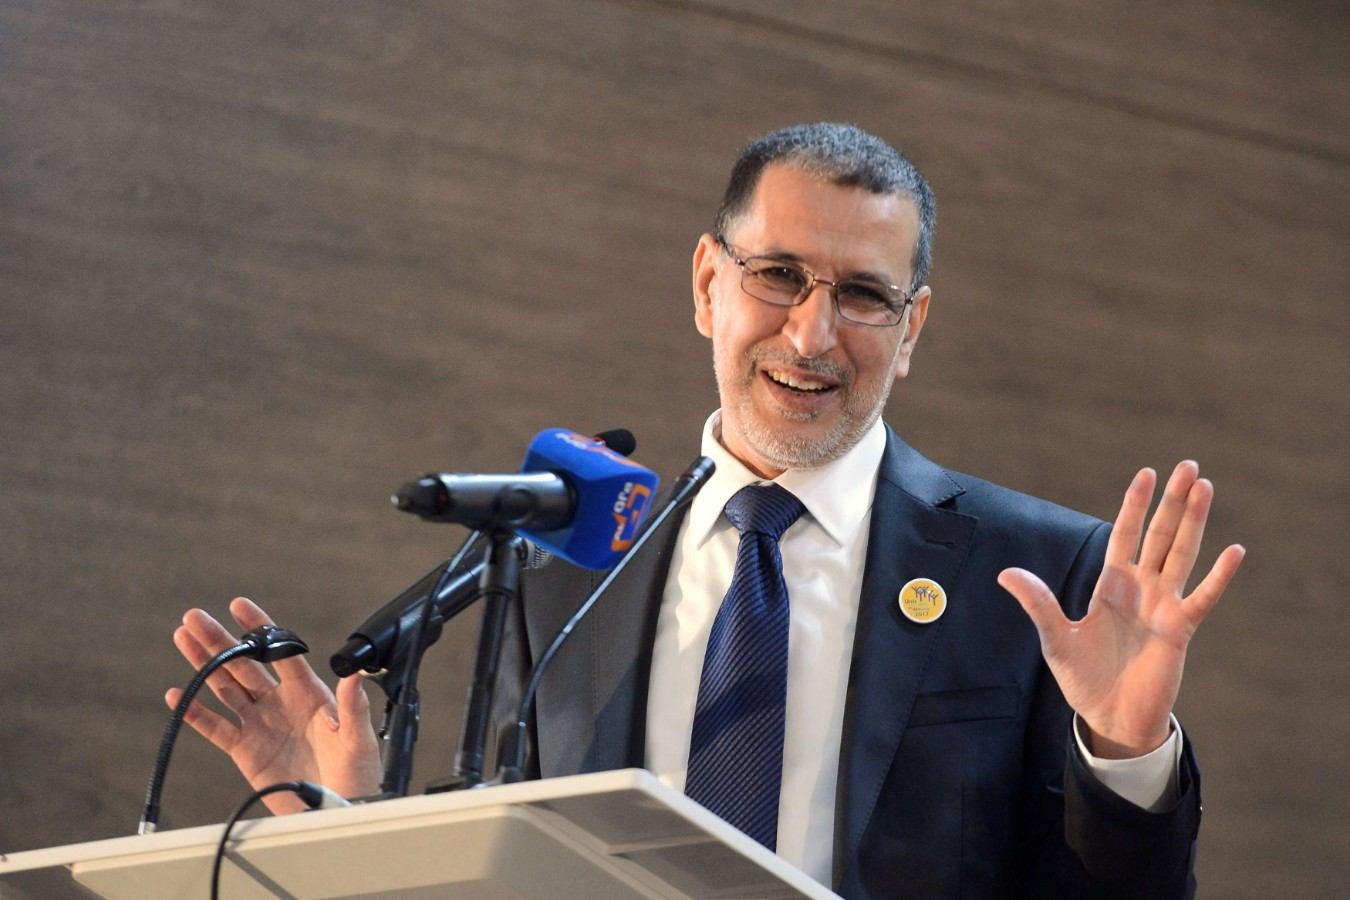 A 2017 file picture shows Moroccan Prime Minister Saad Eddine El Othmani of the Islamist Justice and Development Party giving a speech at the PJD party headquarters in Rabat. (Reuters)